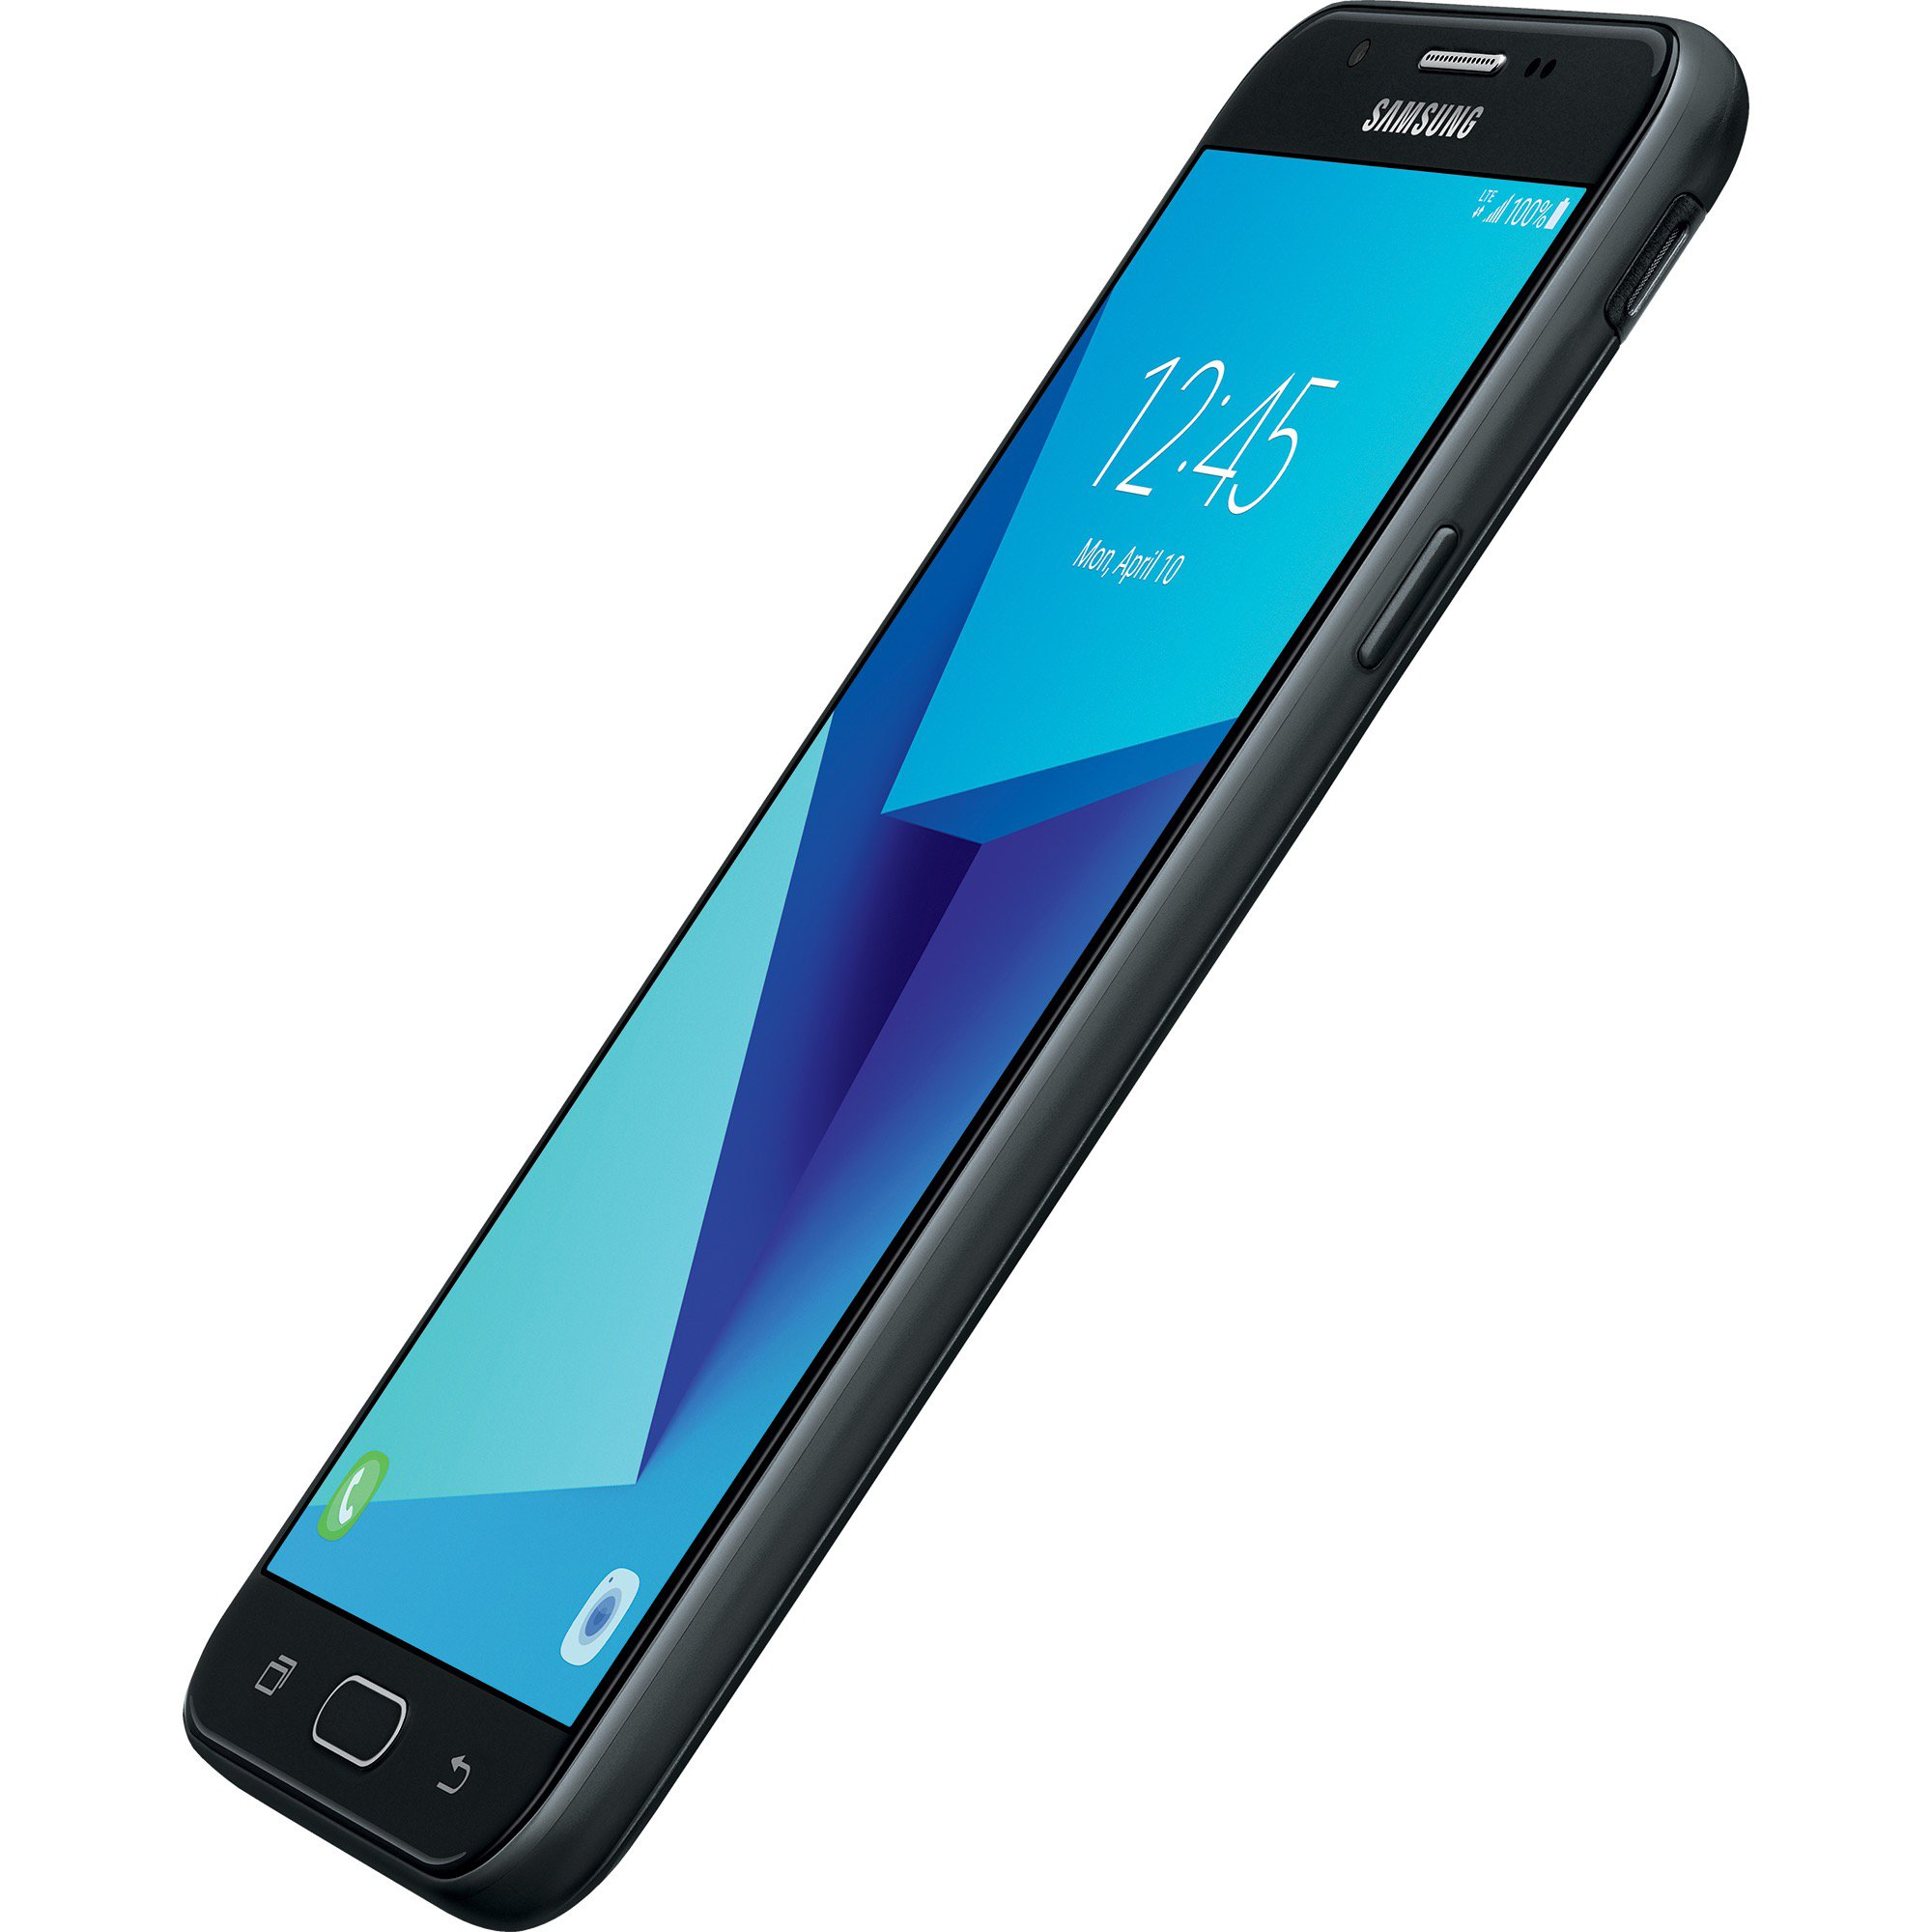 TracFone Samsung Galaxy J7 Sky Pro 4G LTE Prepaid Smartphone by TracFone (Image #4)